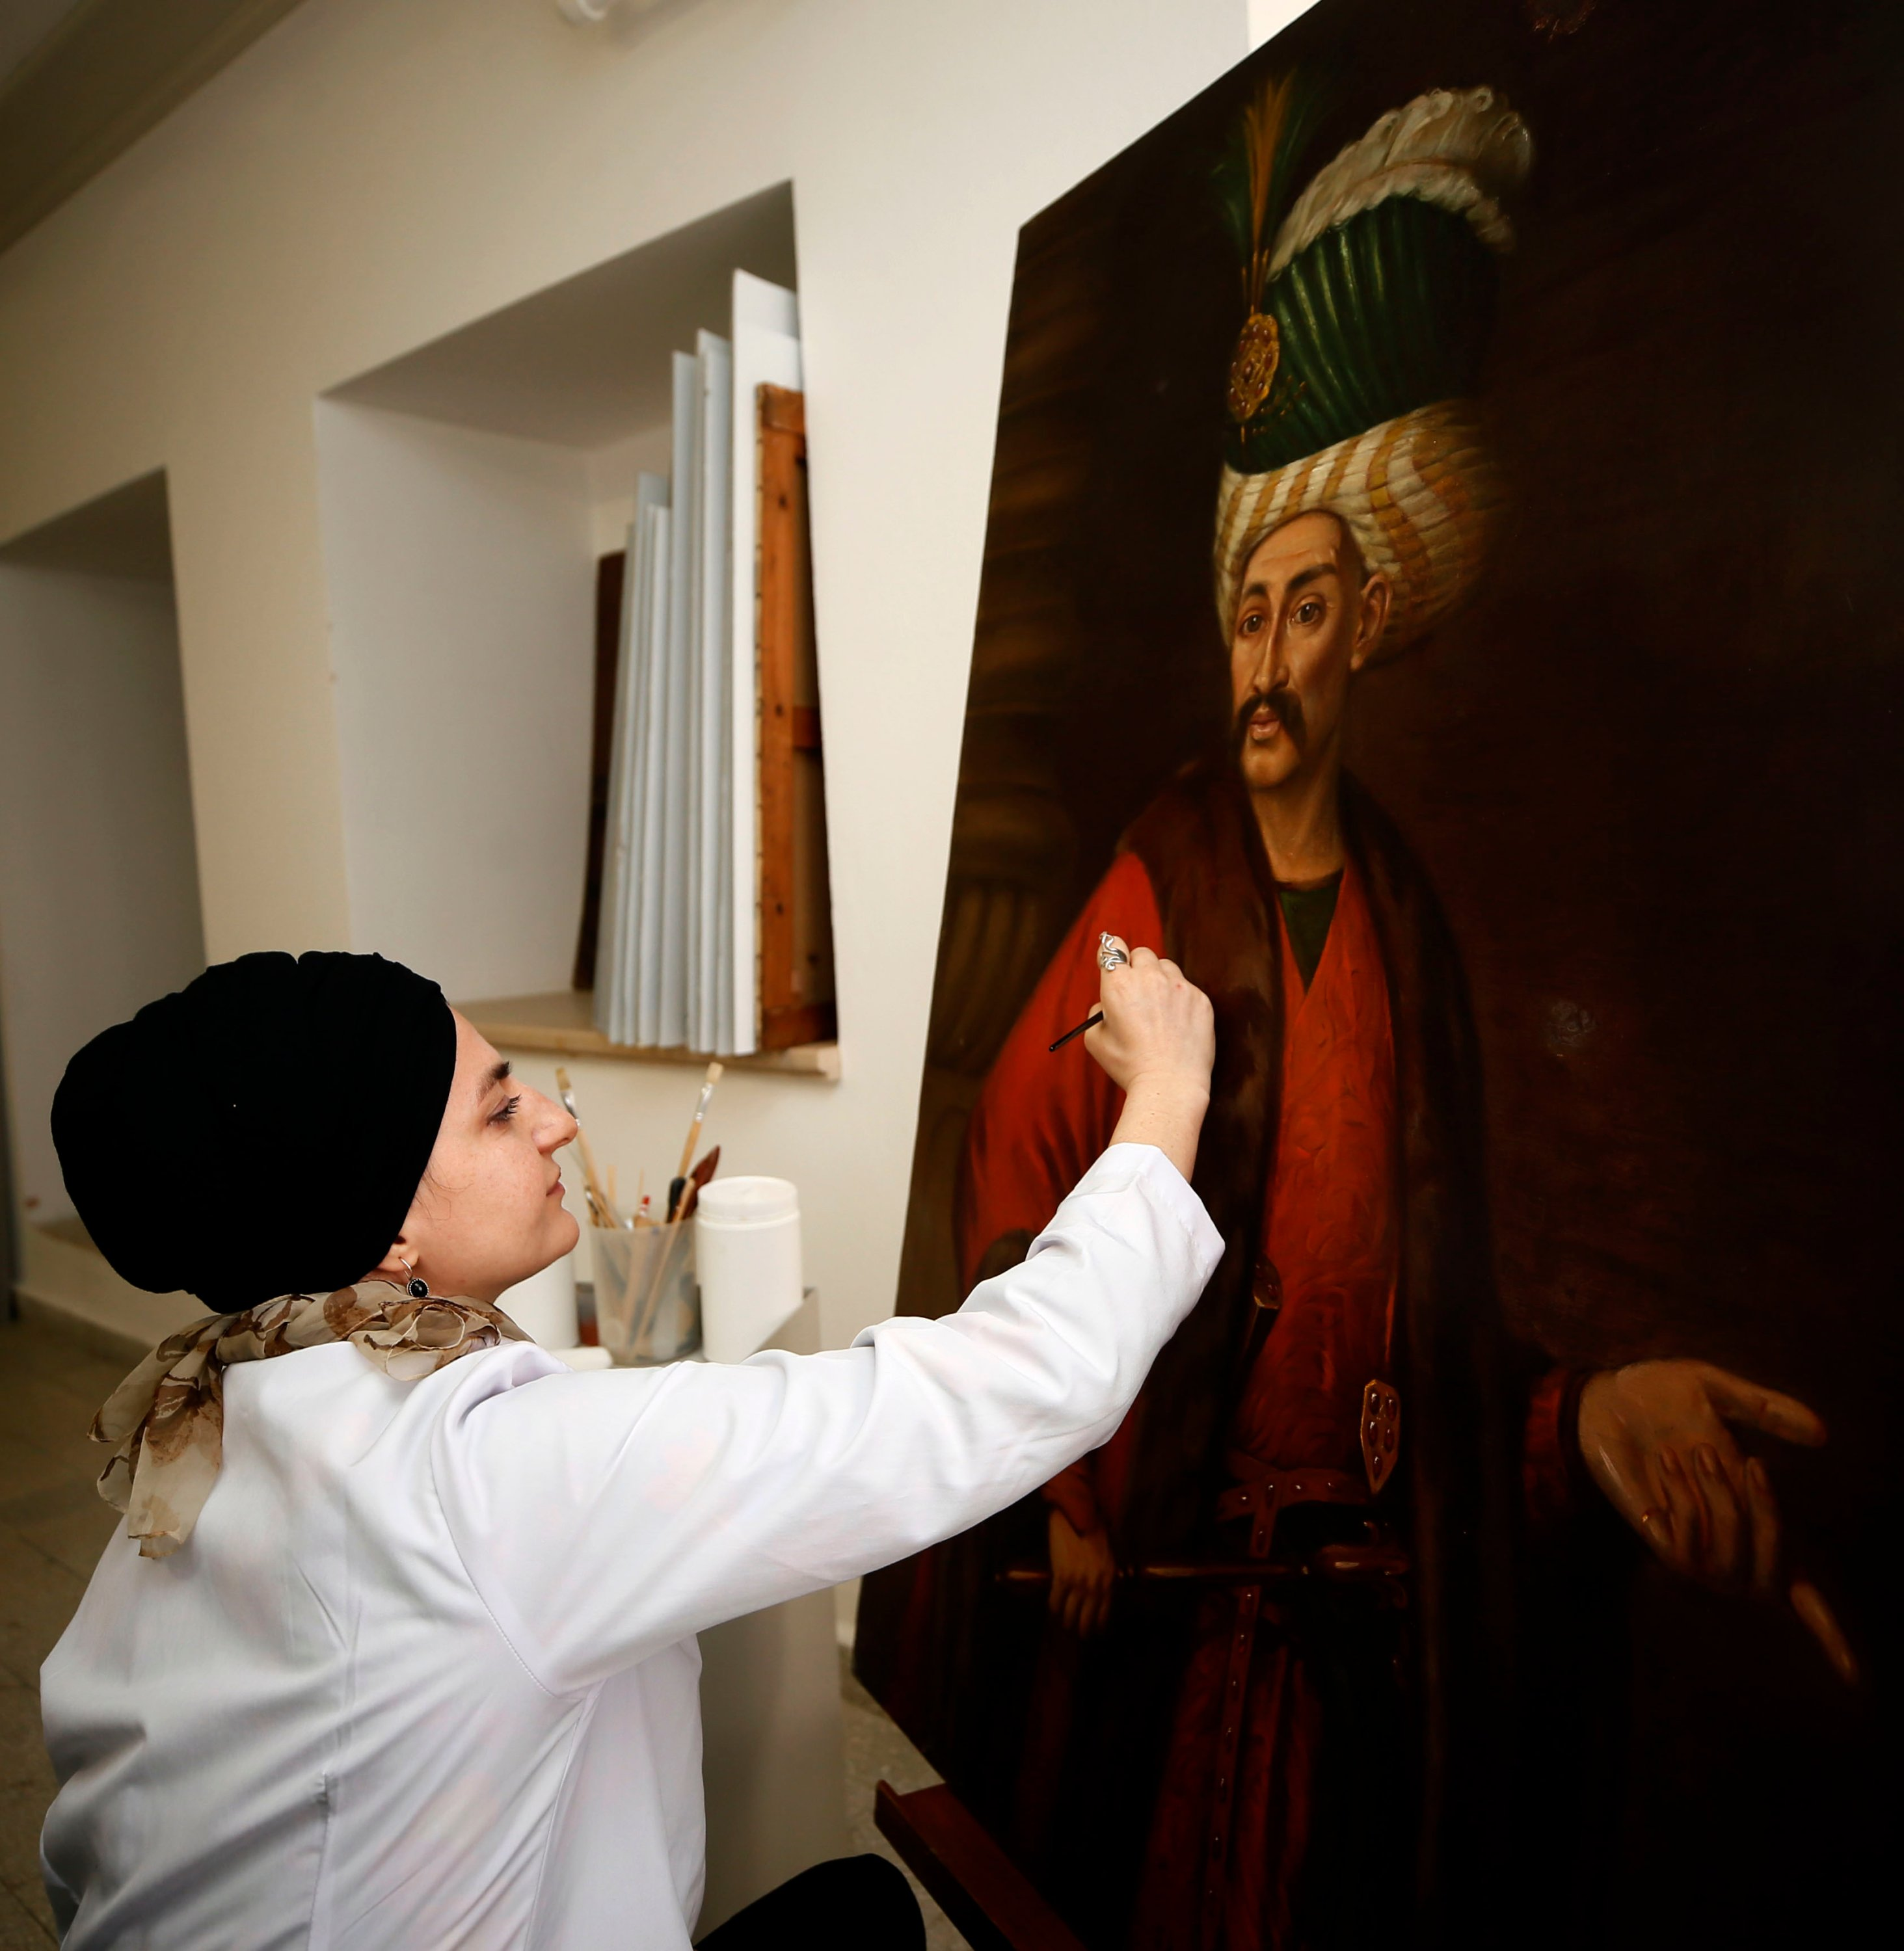 The condition of the paintings is being tested as part of the restoration works. (AA Photo)